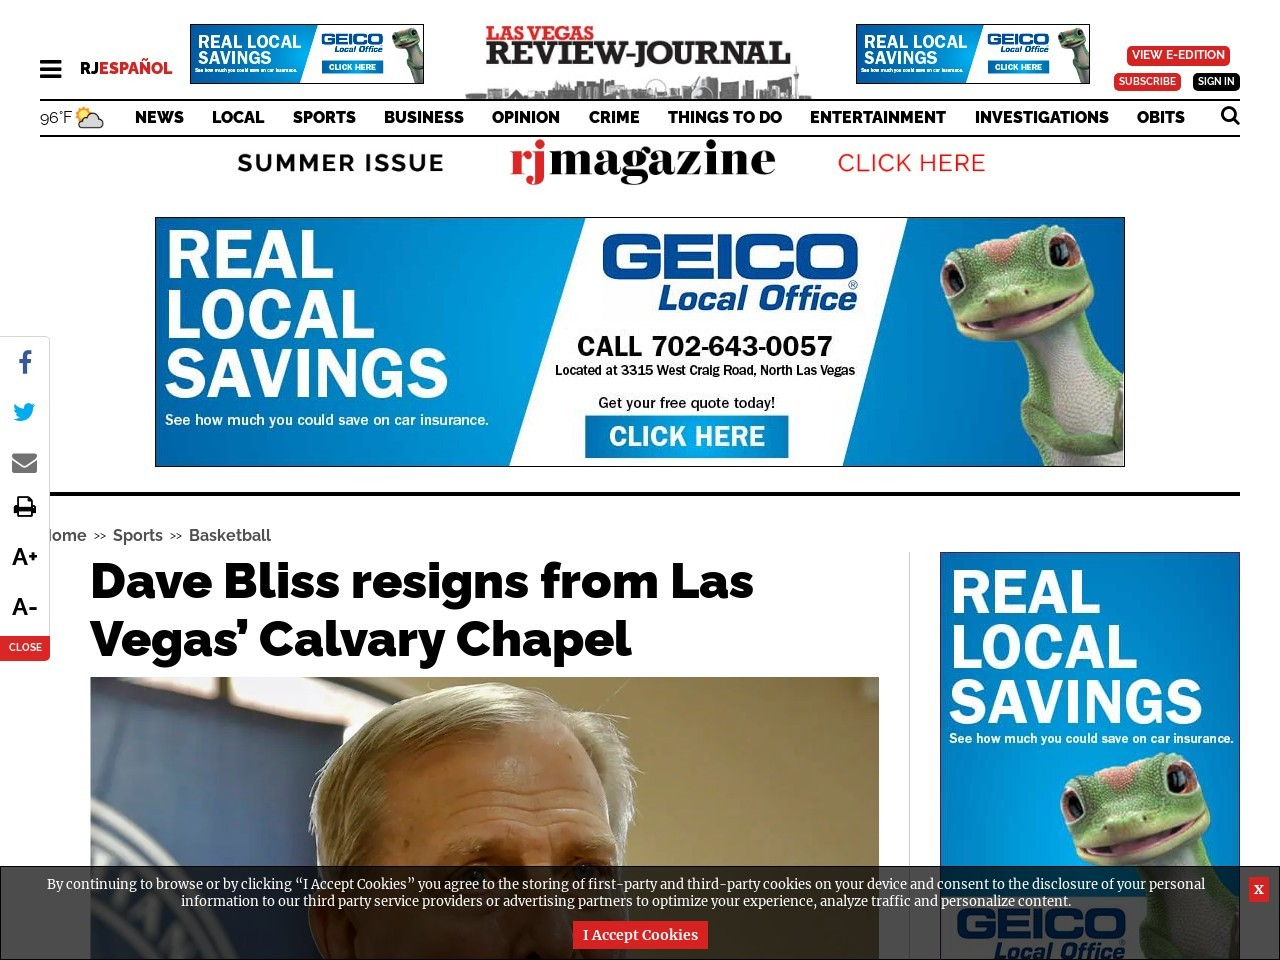 Dave Bliss resigns from Las Vegas' Calvary Chapel